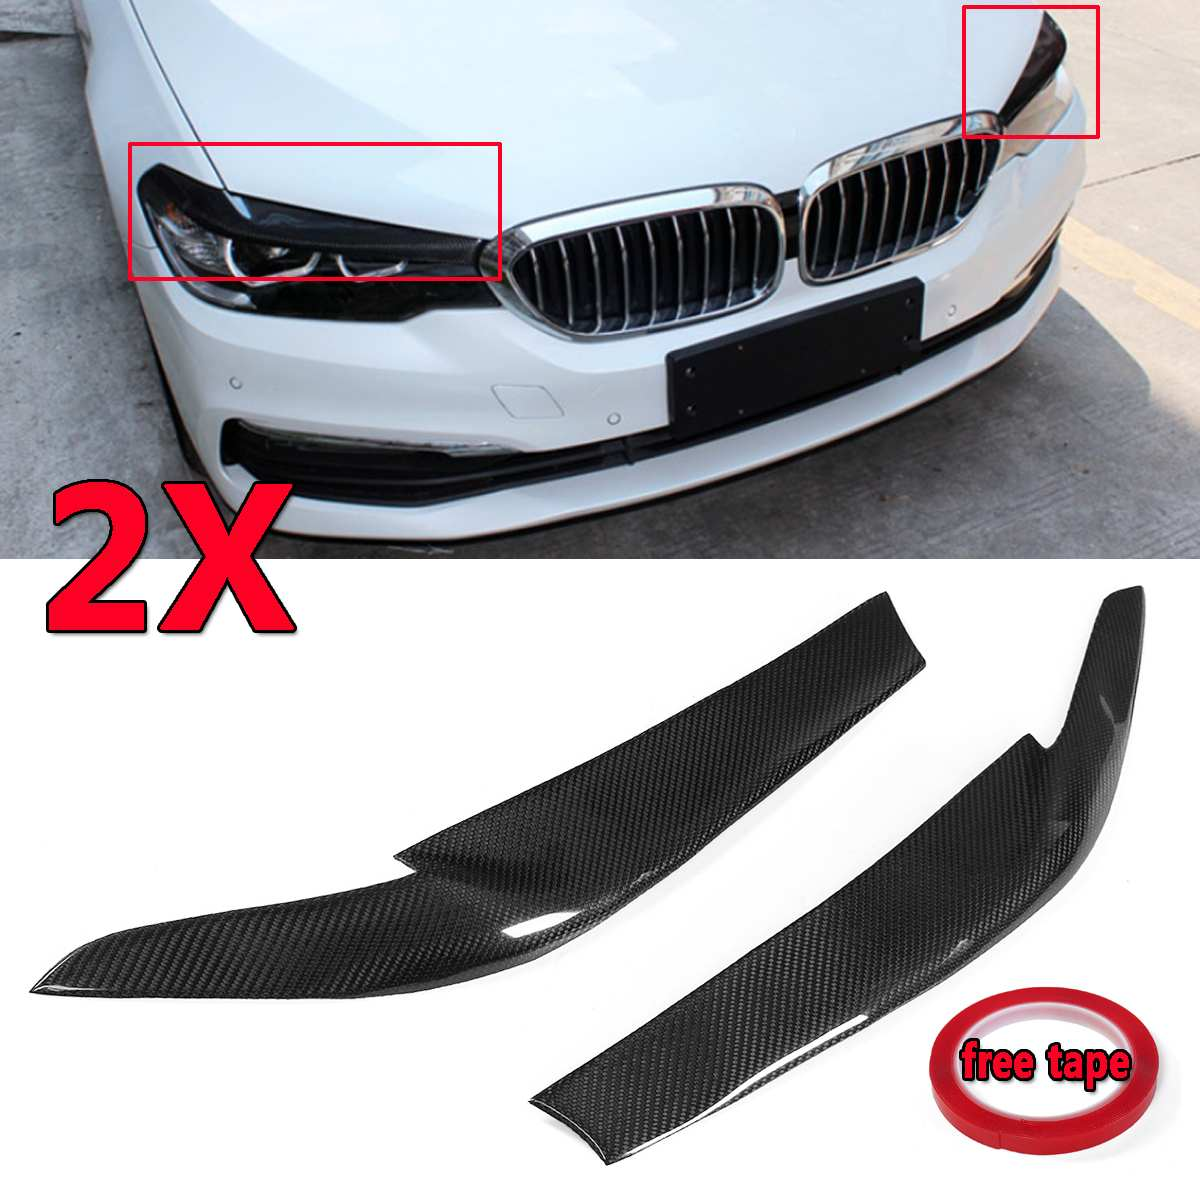 1xReal Carbon Fiber Car Front Headlight EyeLids Eyebrows Cover For <font><b>BMW</b></font> <font><b>G30</b></font> <font><b>530i</b></font> 540i M550i 2017-2018 Head Lamp Cover Cap Eye Lid image